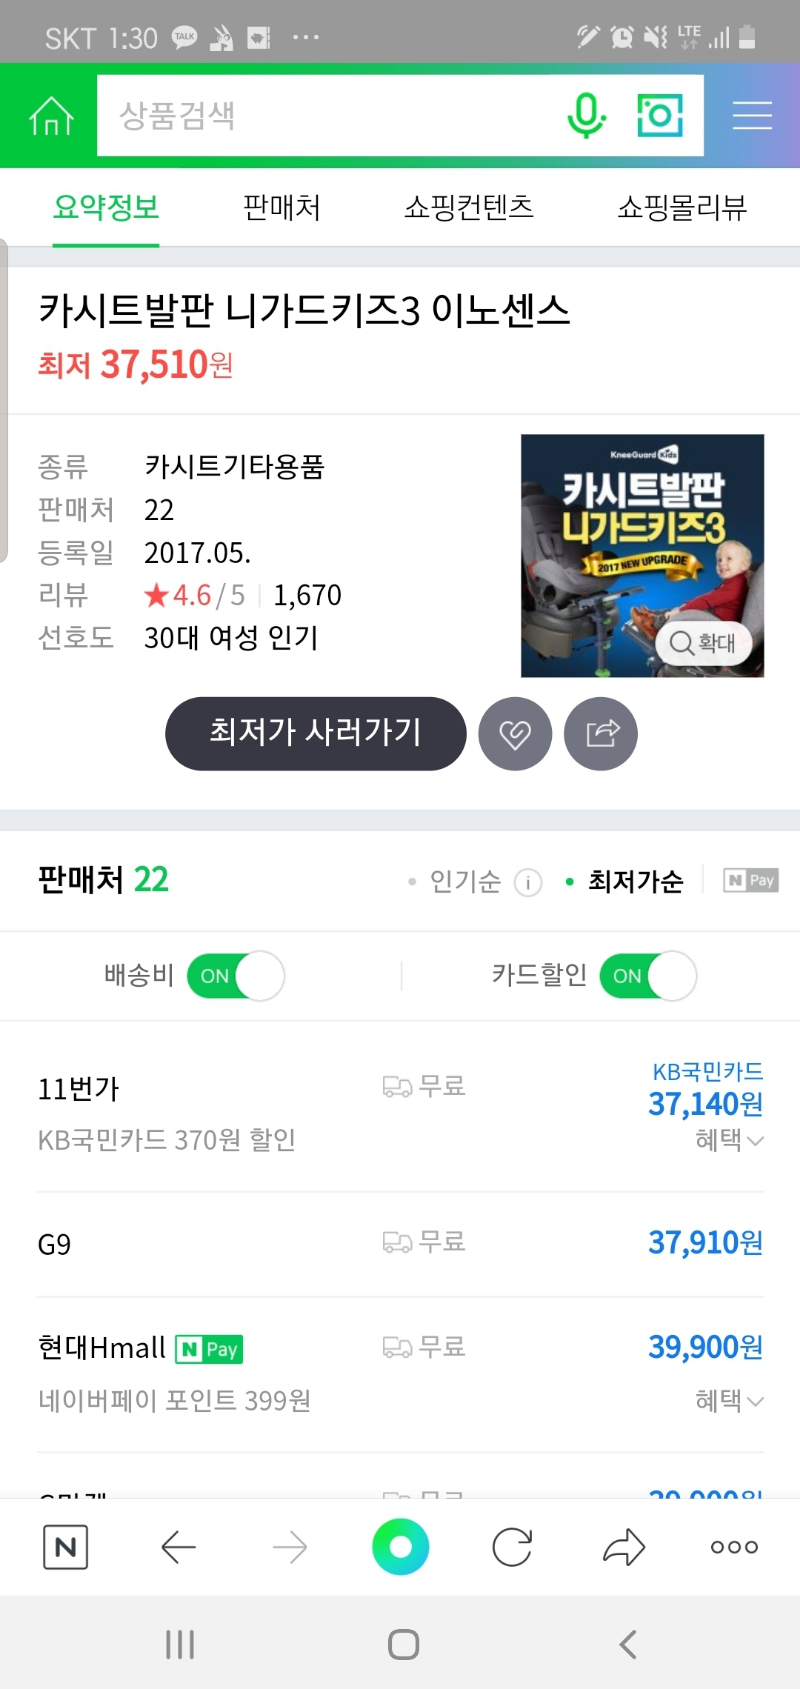 Screenshot_20191026-013057_NAVER.jpg